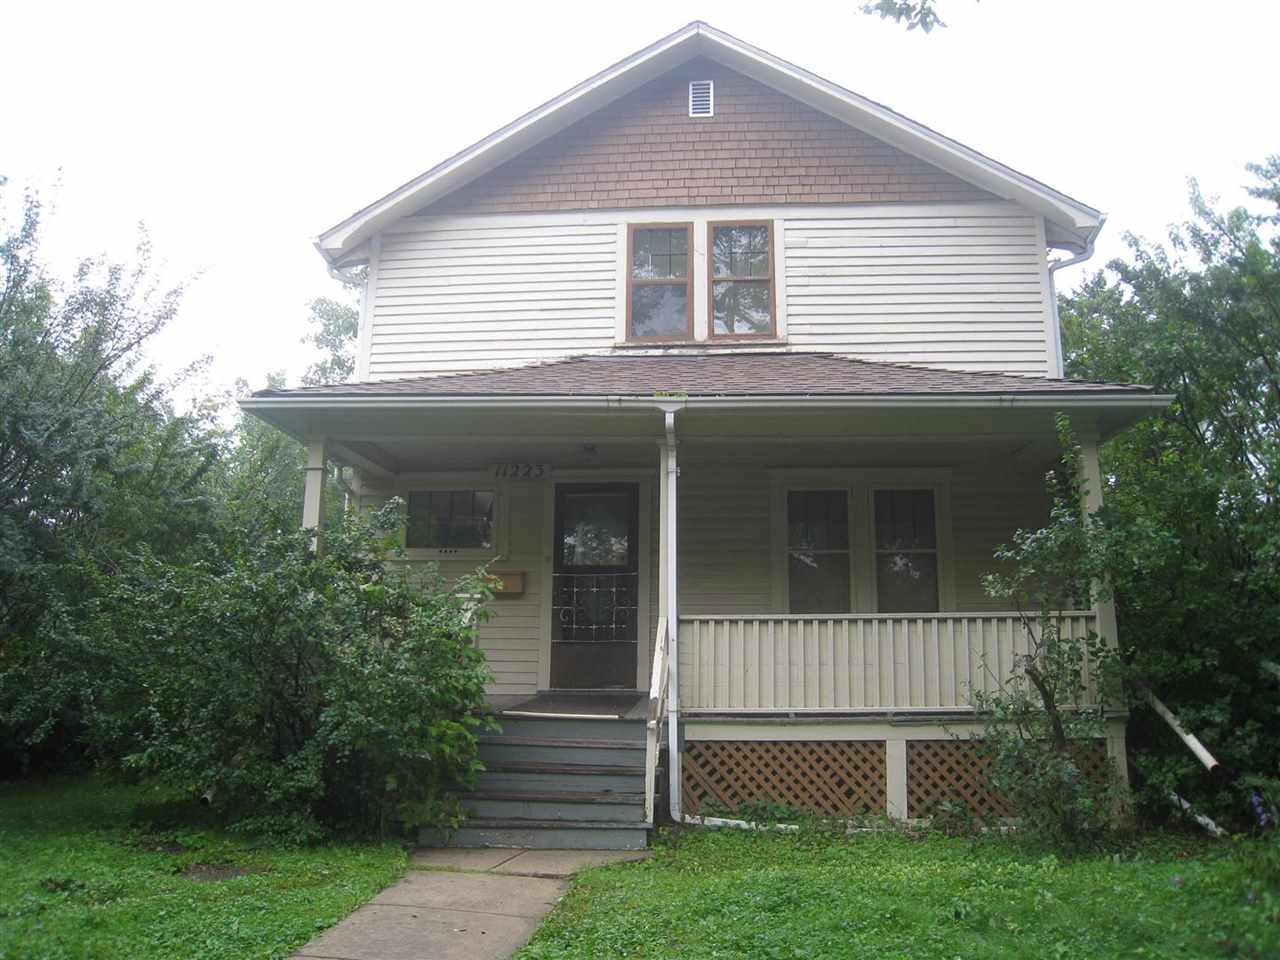 """Property is essentially original and is being sold """"as is / where is"""" at time of possession. No warranties. The seller has not lived in the home though it was rented until August 31, 2019. Lot dimensions are 50' x 150' and zoning is RF3. Excellent opportunity for redevelopment. Or as 11223-125 St has some historical significance, the new owner can choose to re-invigorate this part of the city's heritage. Come live in trendy Inglewood beside the restaurants and shops of 124 Street. It's just a short hop to the Brewery District for more restaurants and shopping choices. Westmount Shopping Centre, great schools, Telus World of Science, superb transportation and other community amenities are close at hand. This location is a big part of the heart of Edmonton."""